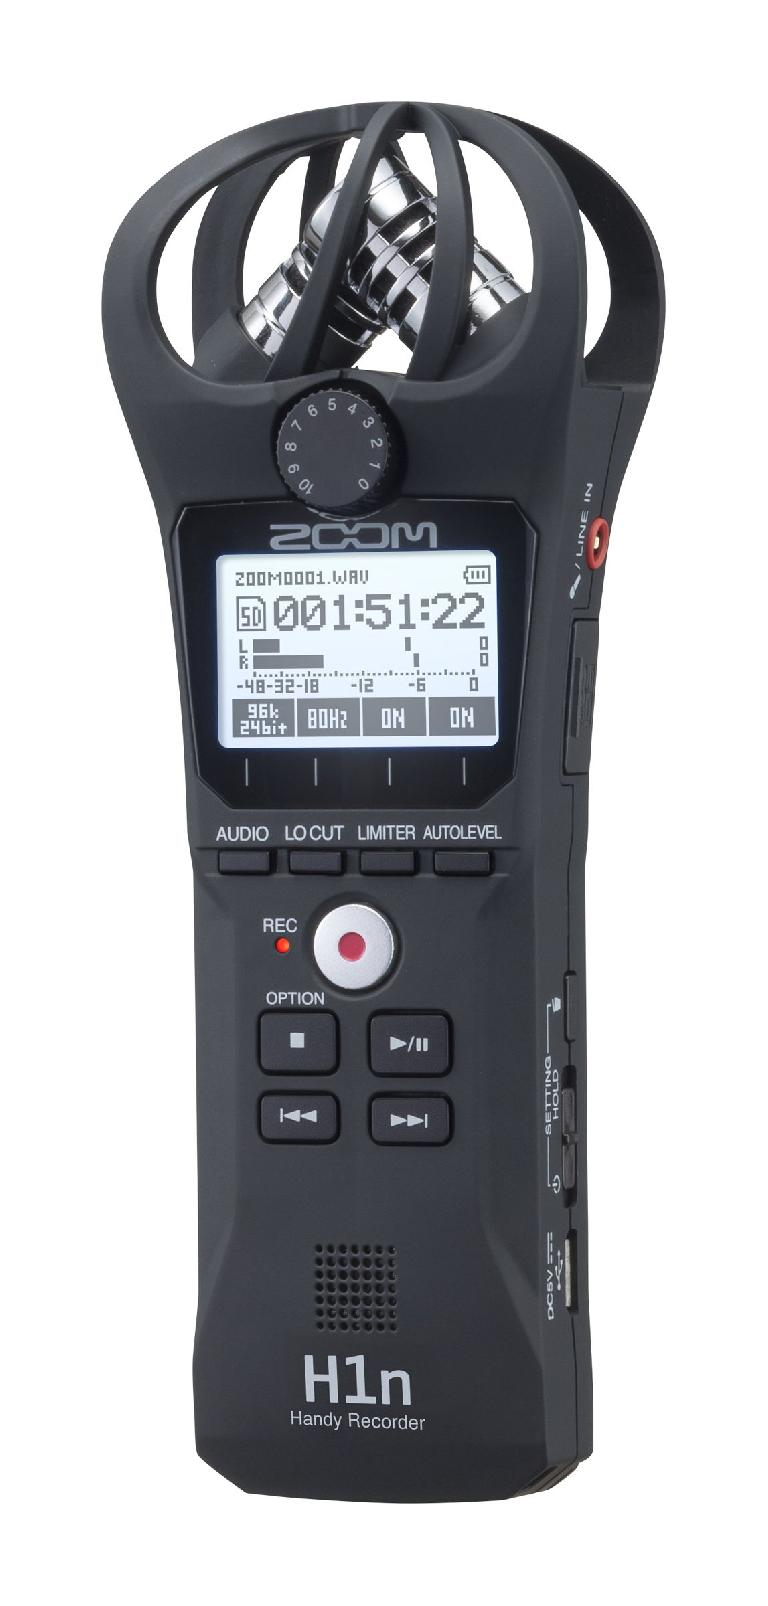 Zoom H1n portable audio recorder